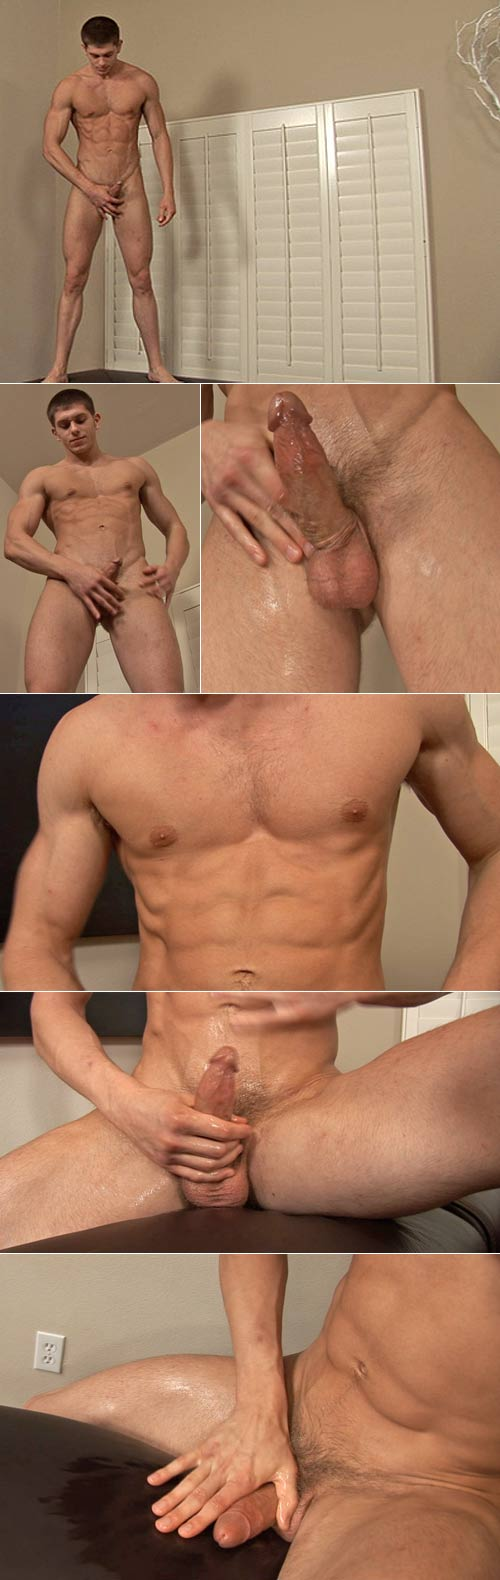 David at SeanCody